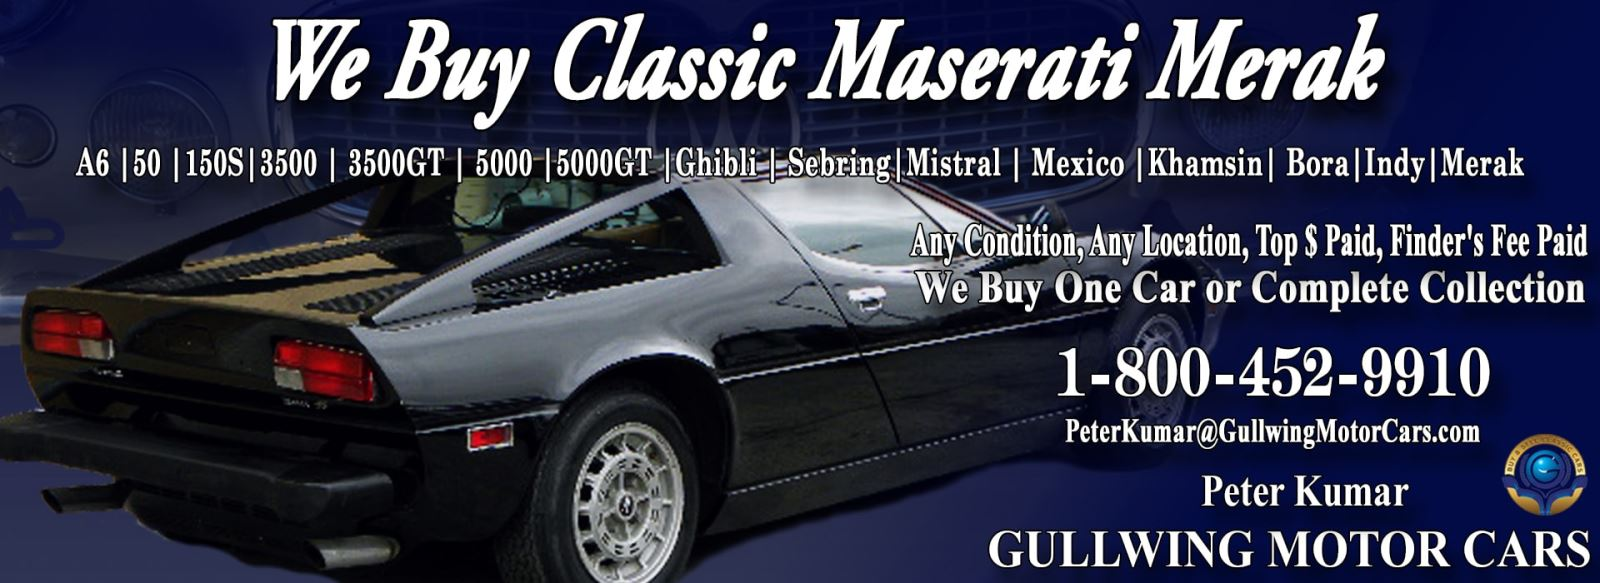 Classic Maserati Merak for sale, we buy vintage Maserati Merak. Call Peter Kumar. Gullwing Motor